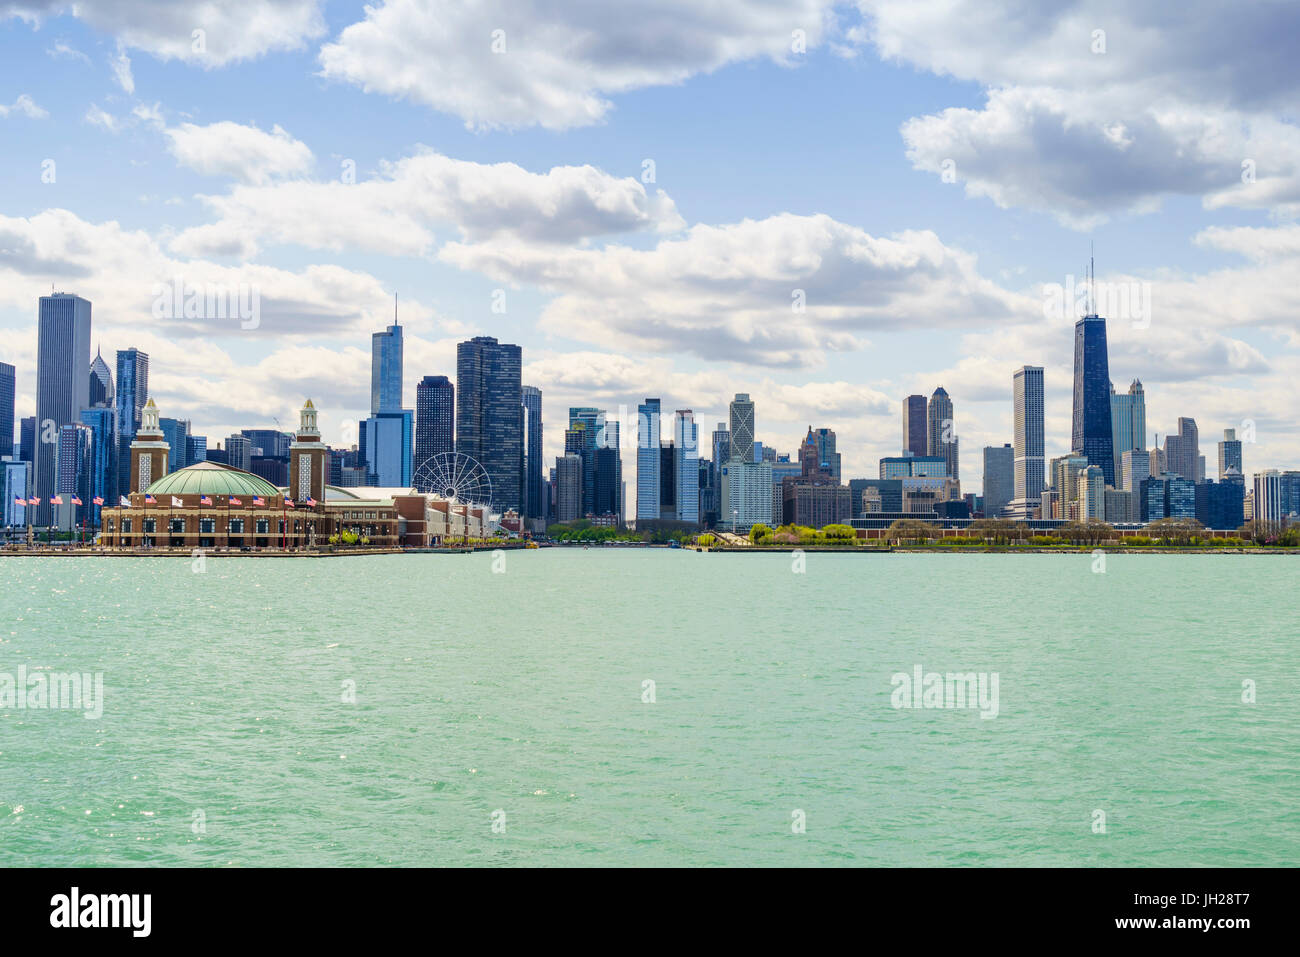 Chicago skyline and Navy Pier from Lake Michigan, Chicago, Illinois, United States of America, North America - Stock Image